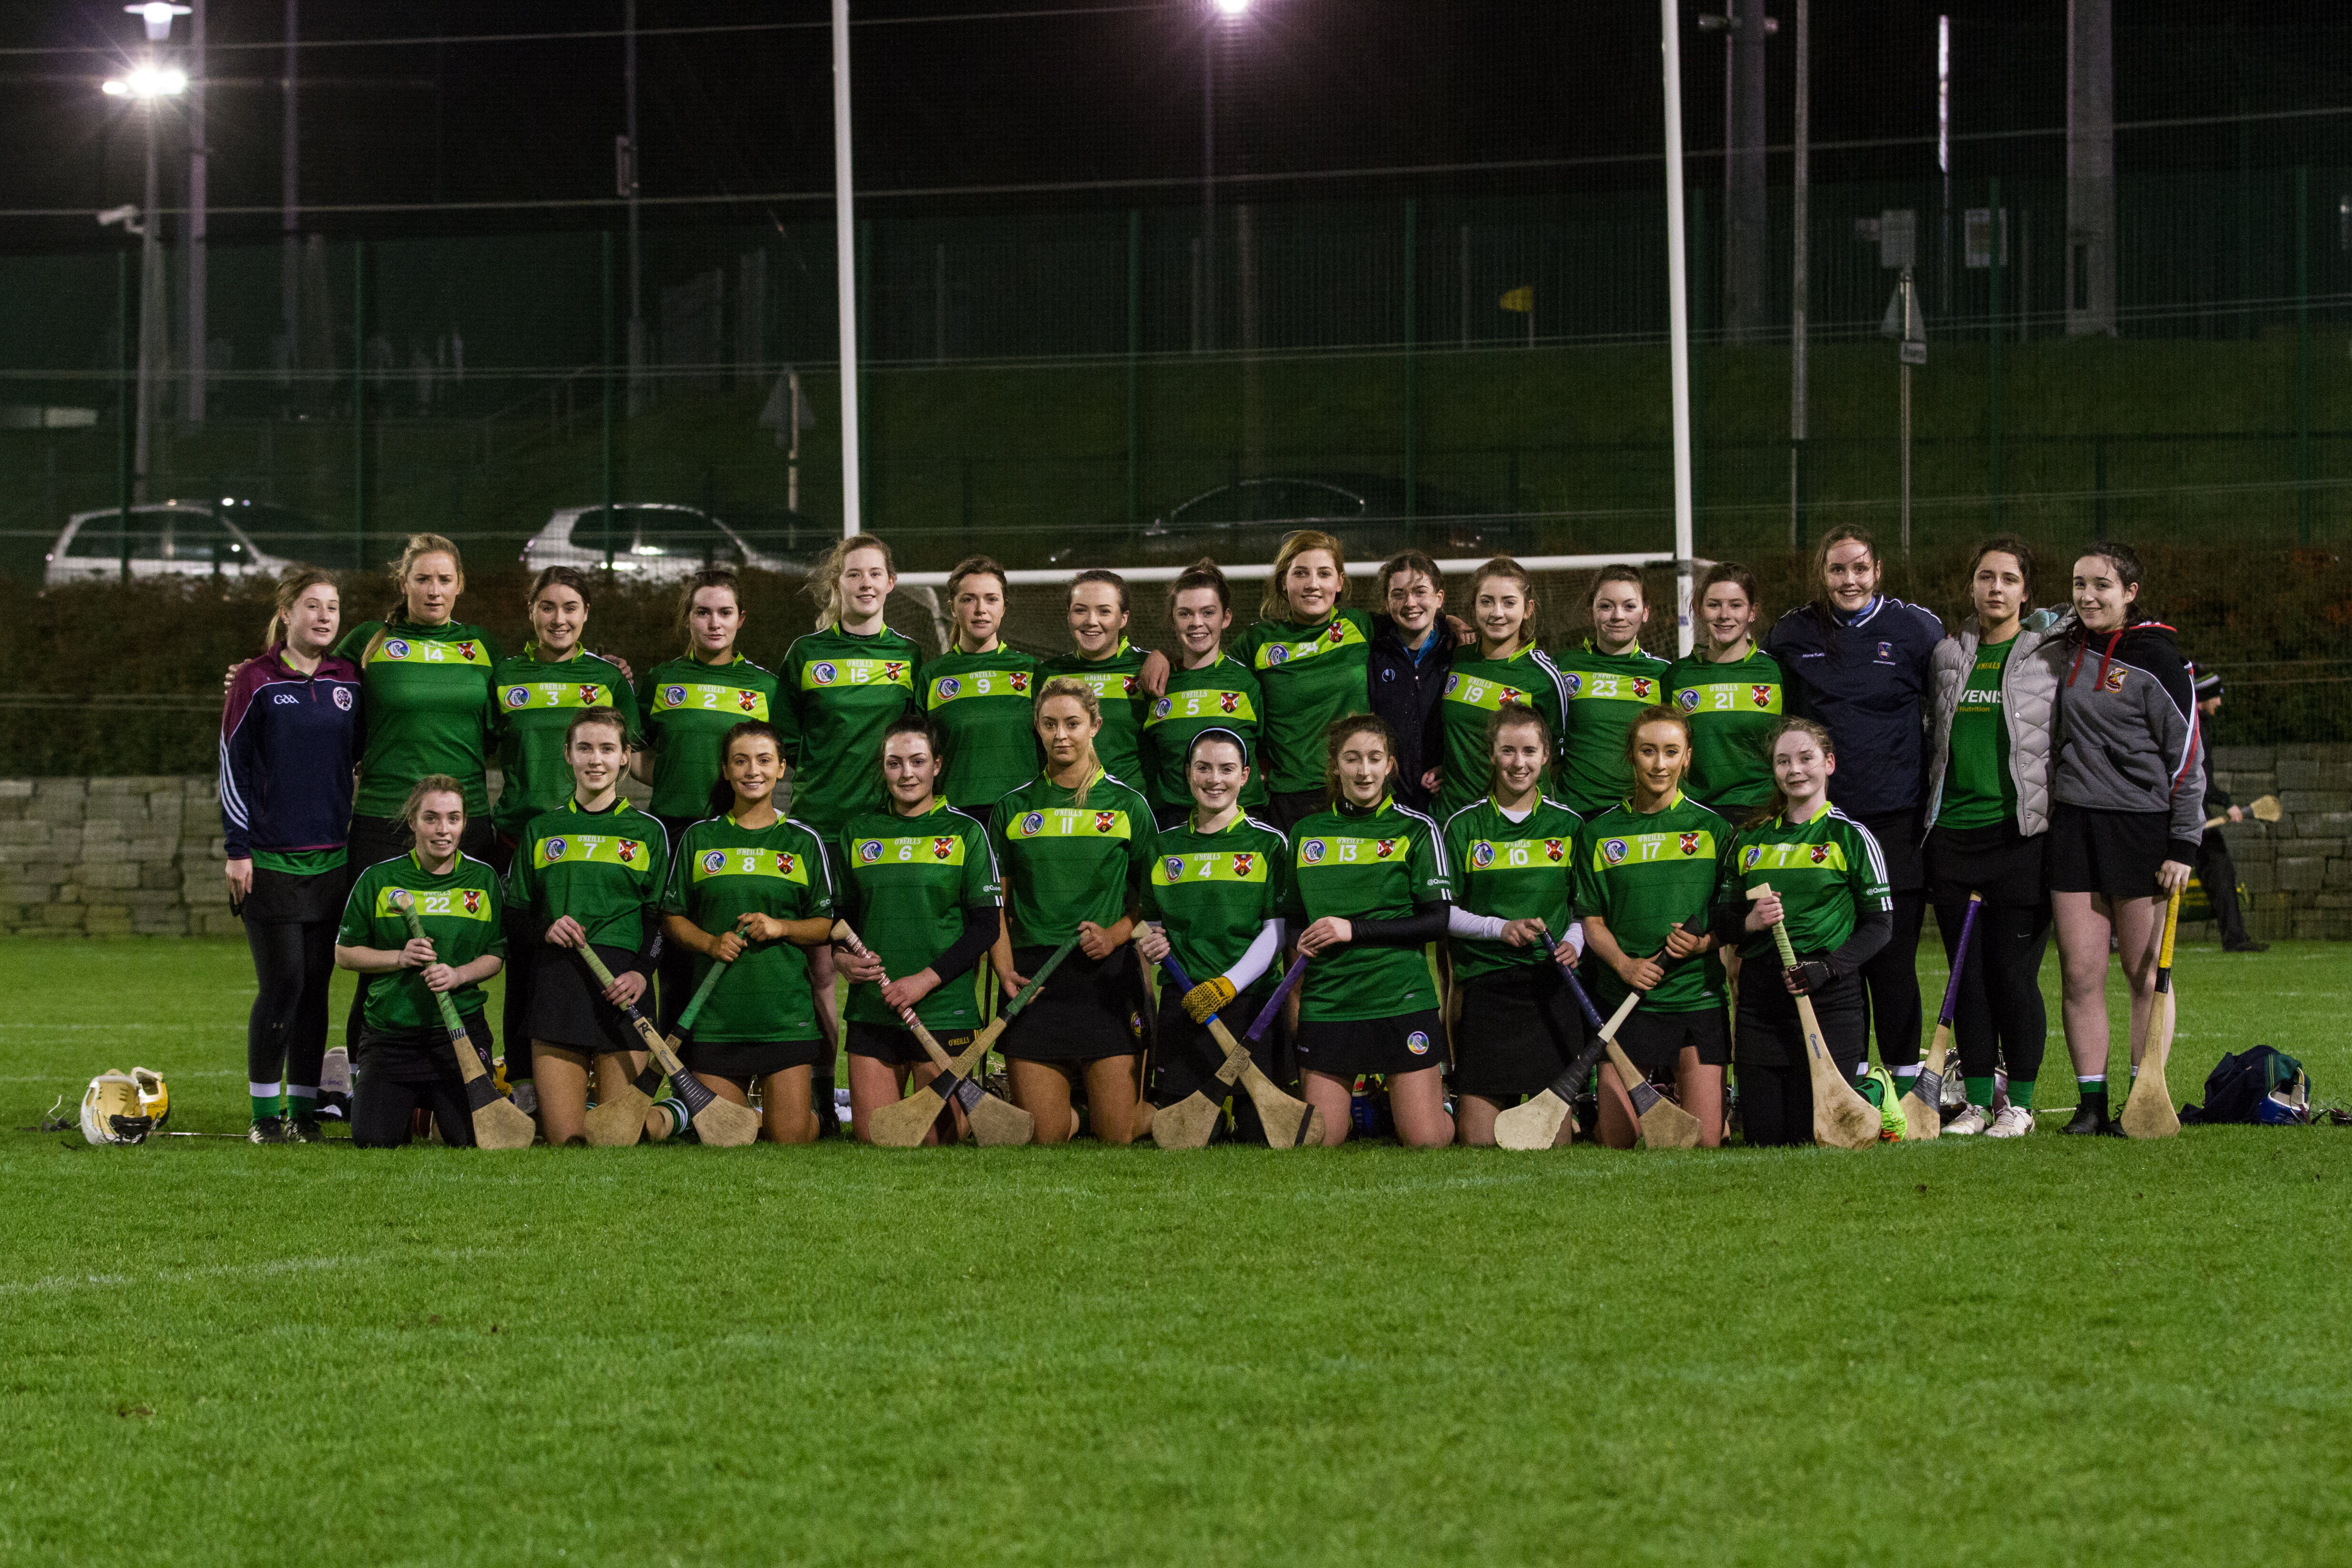 Camogs lose out on points difference